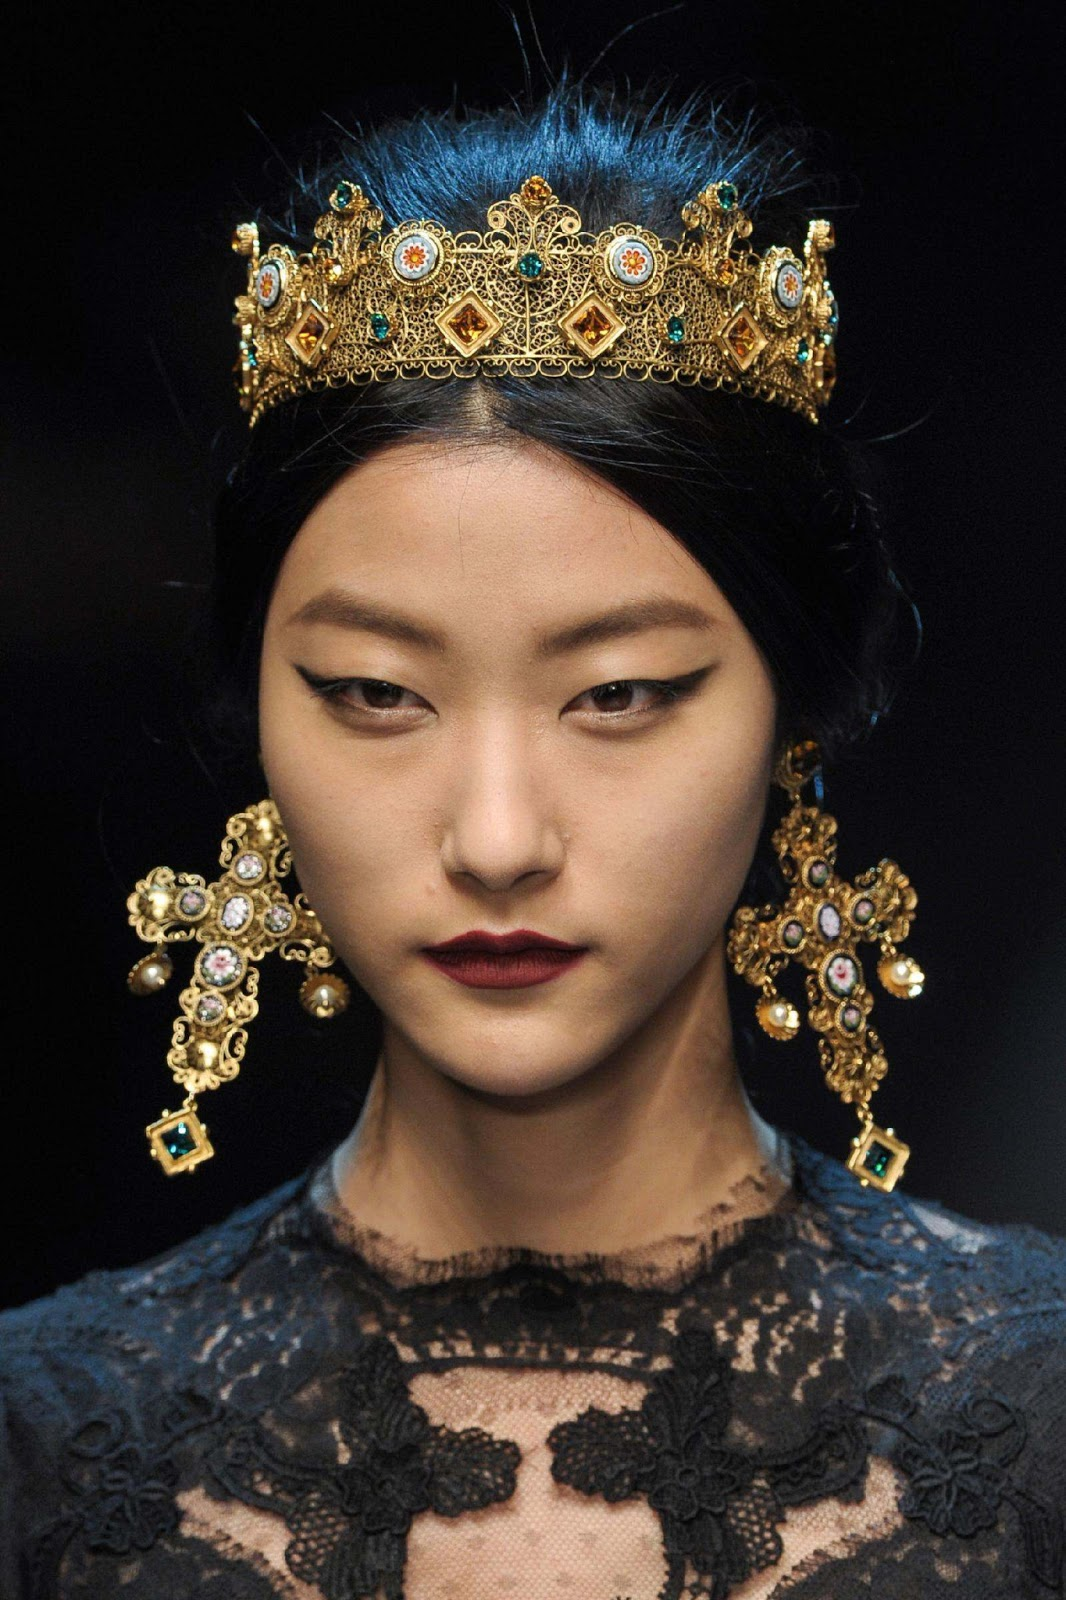 Dolce and Gabbana Crown and Jewls